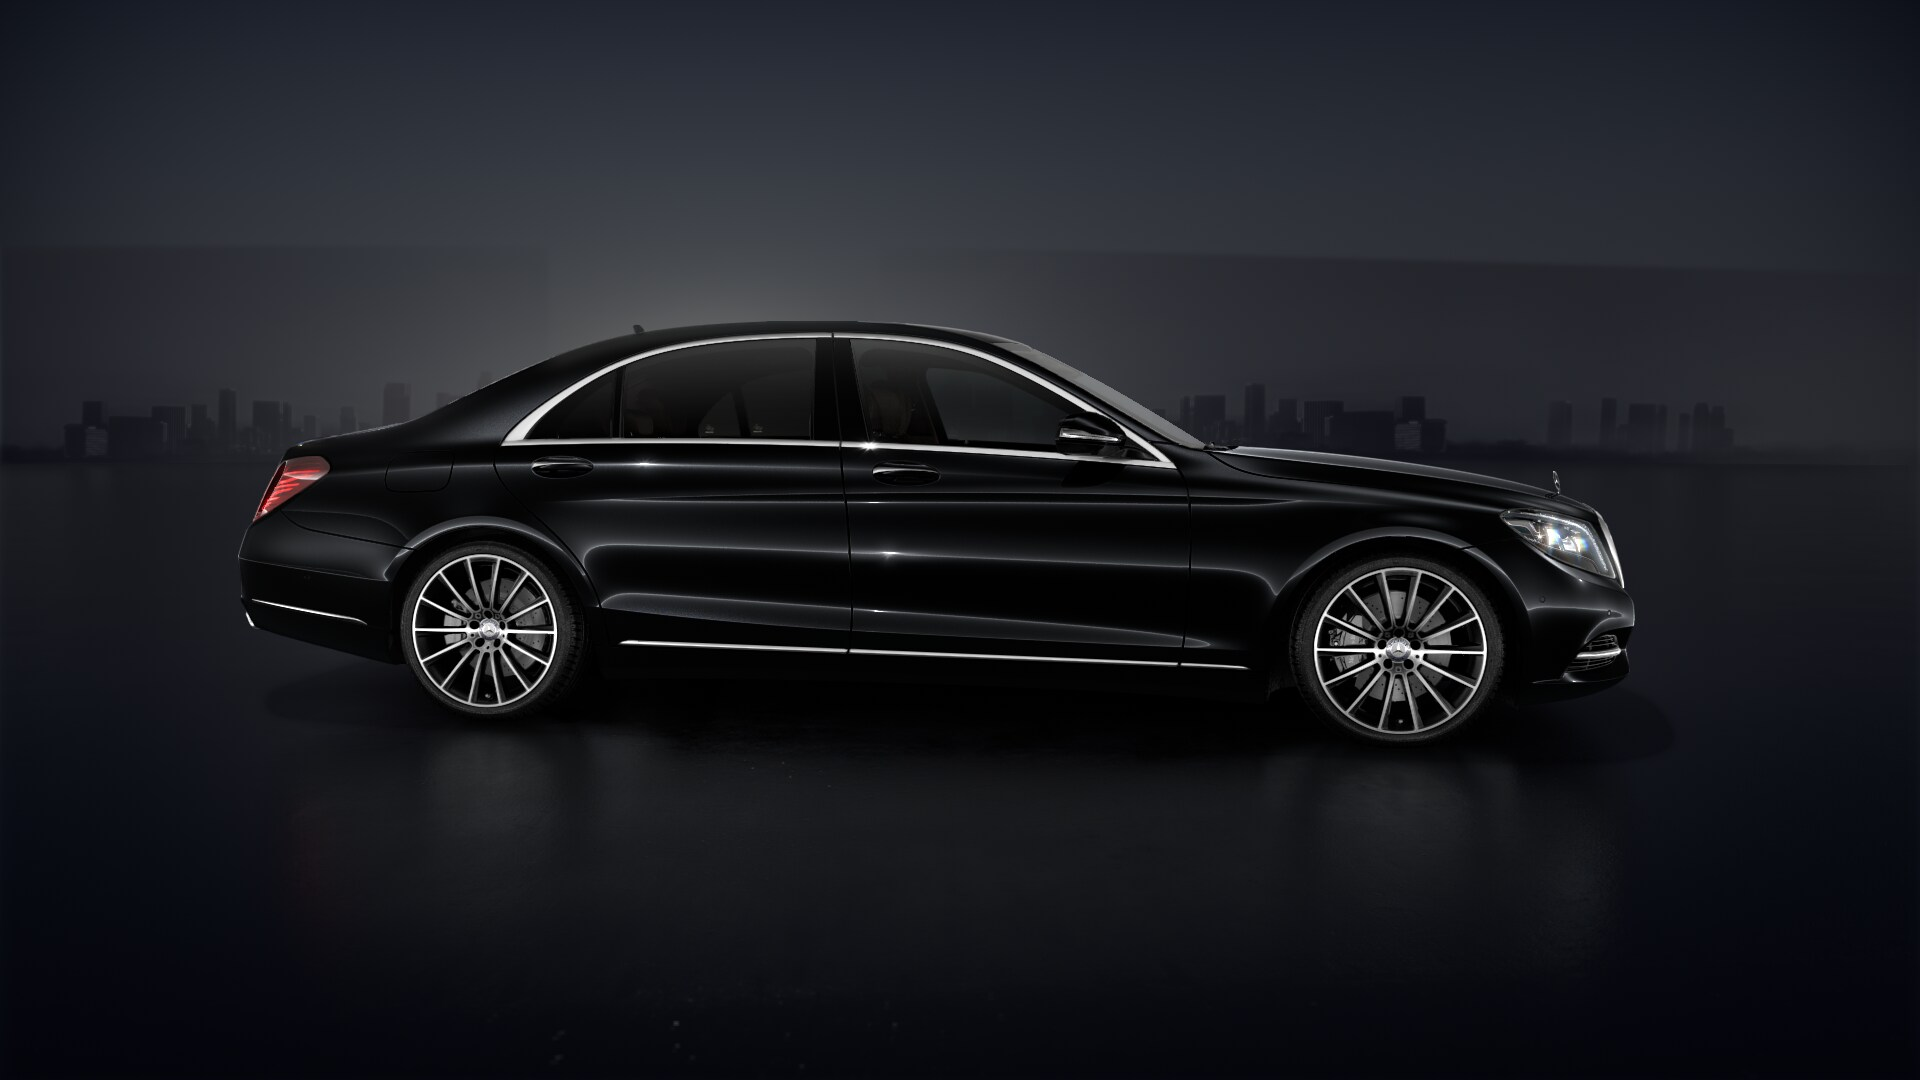 mercedes benz s class s500l 4matic alphubel limousine service. Black Bedroom Furniture Sets. Home Design Ideas